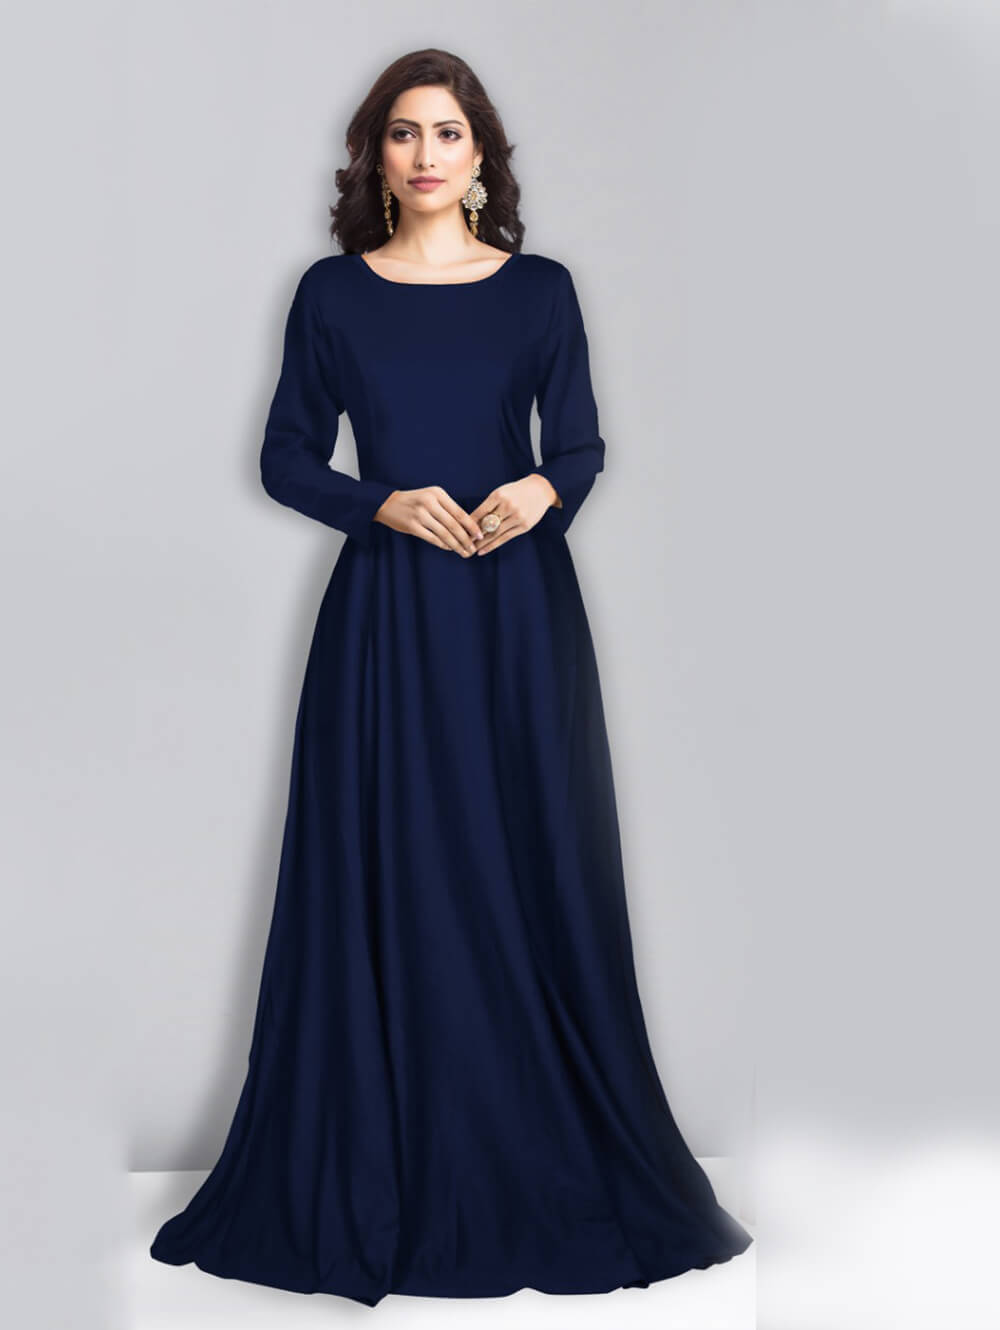 ZORBA103 BLUE M Size Exclusive Designer Gown Collection